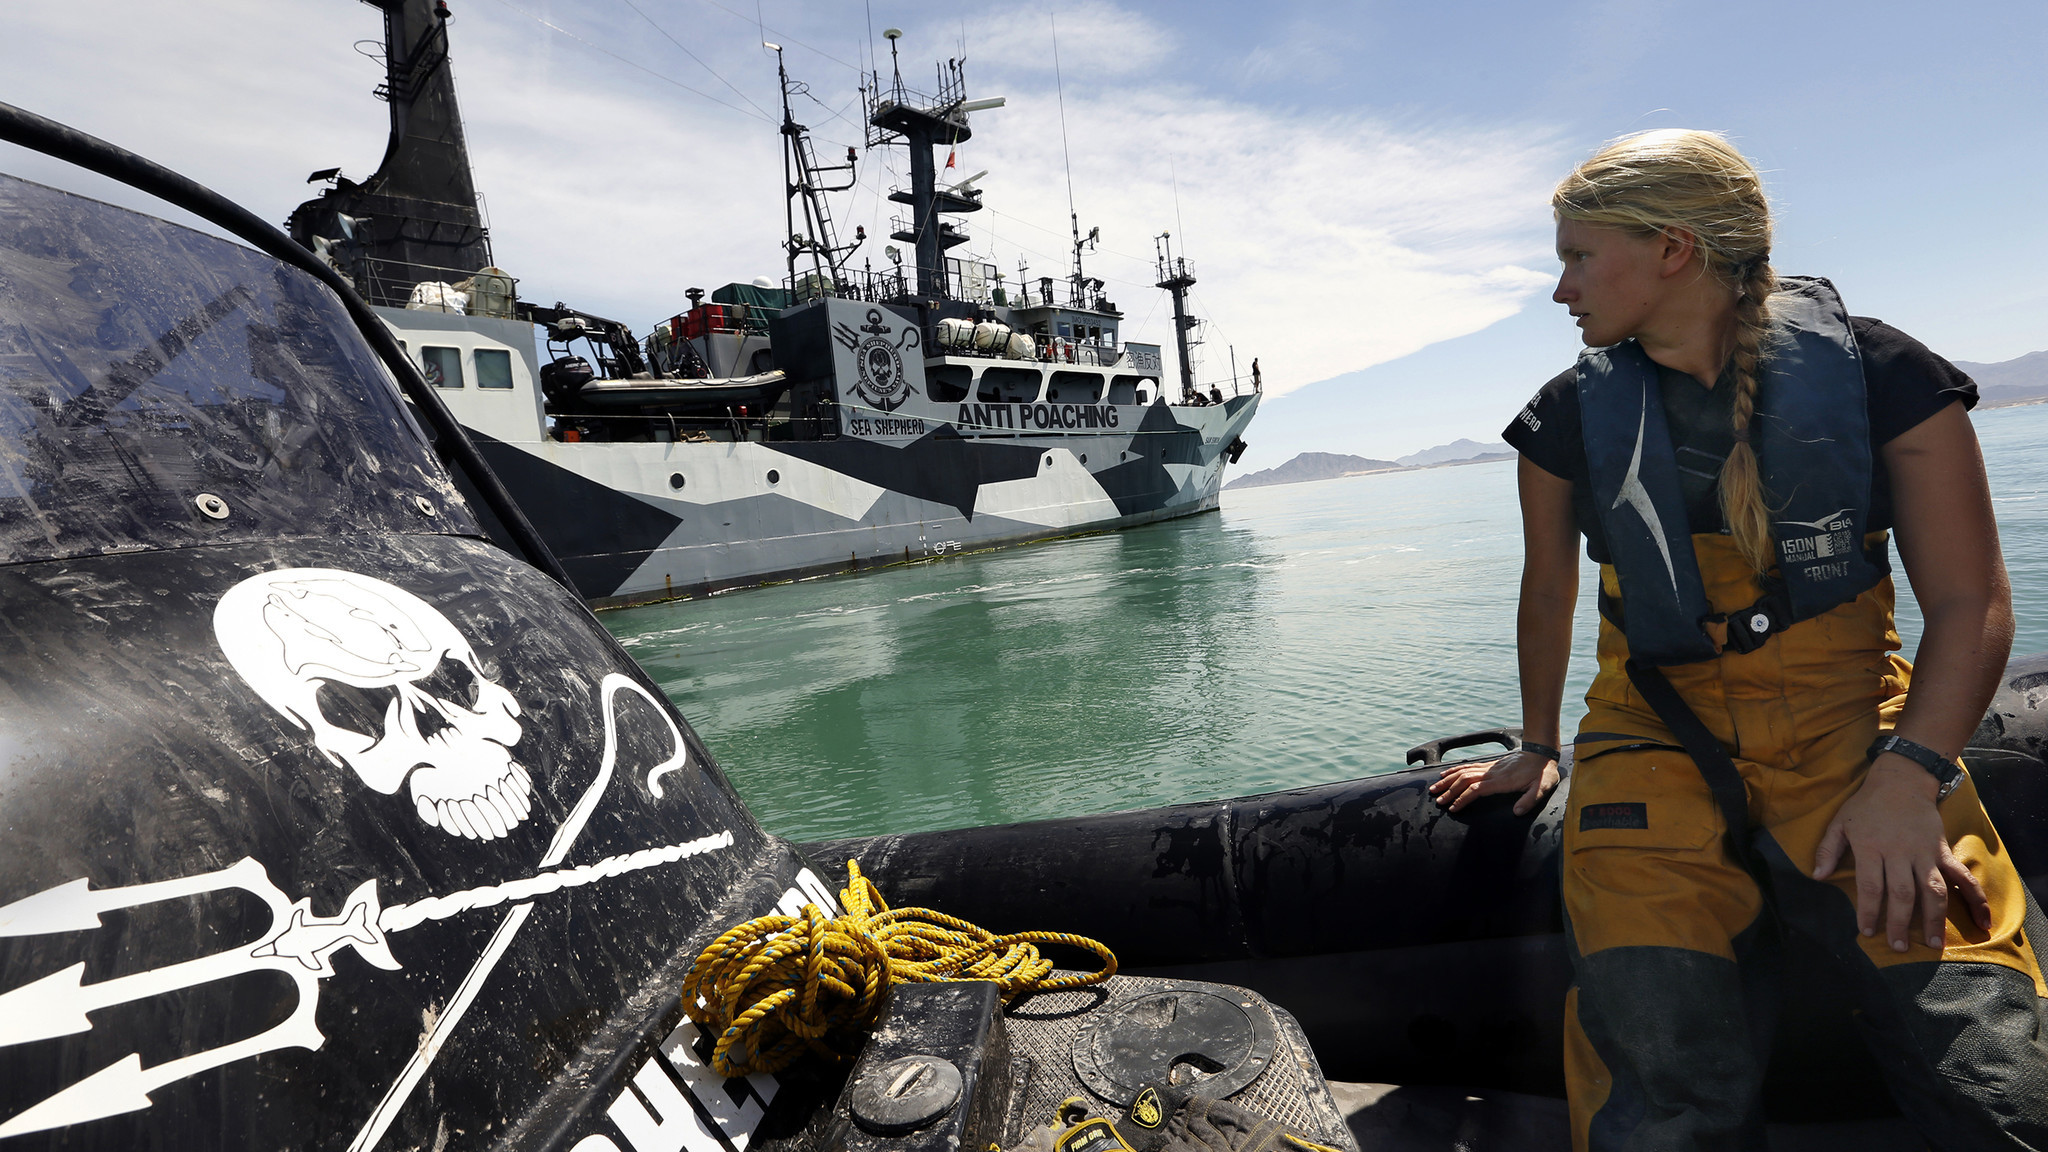 The Sea Shepherd activists embrace an attitude that could be called